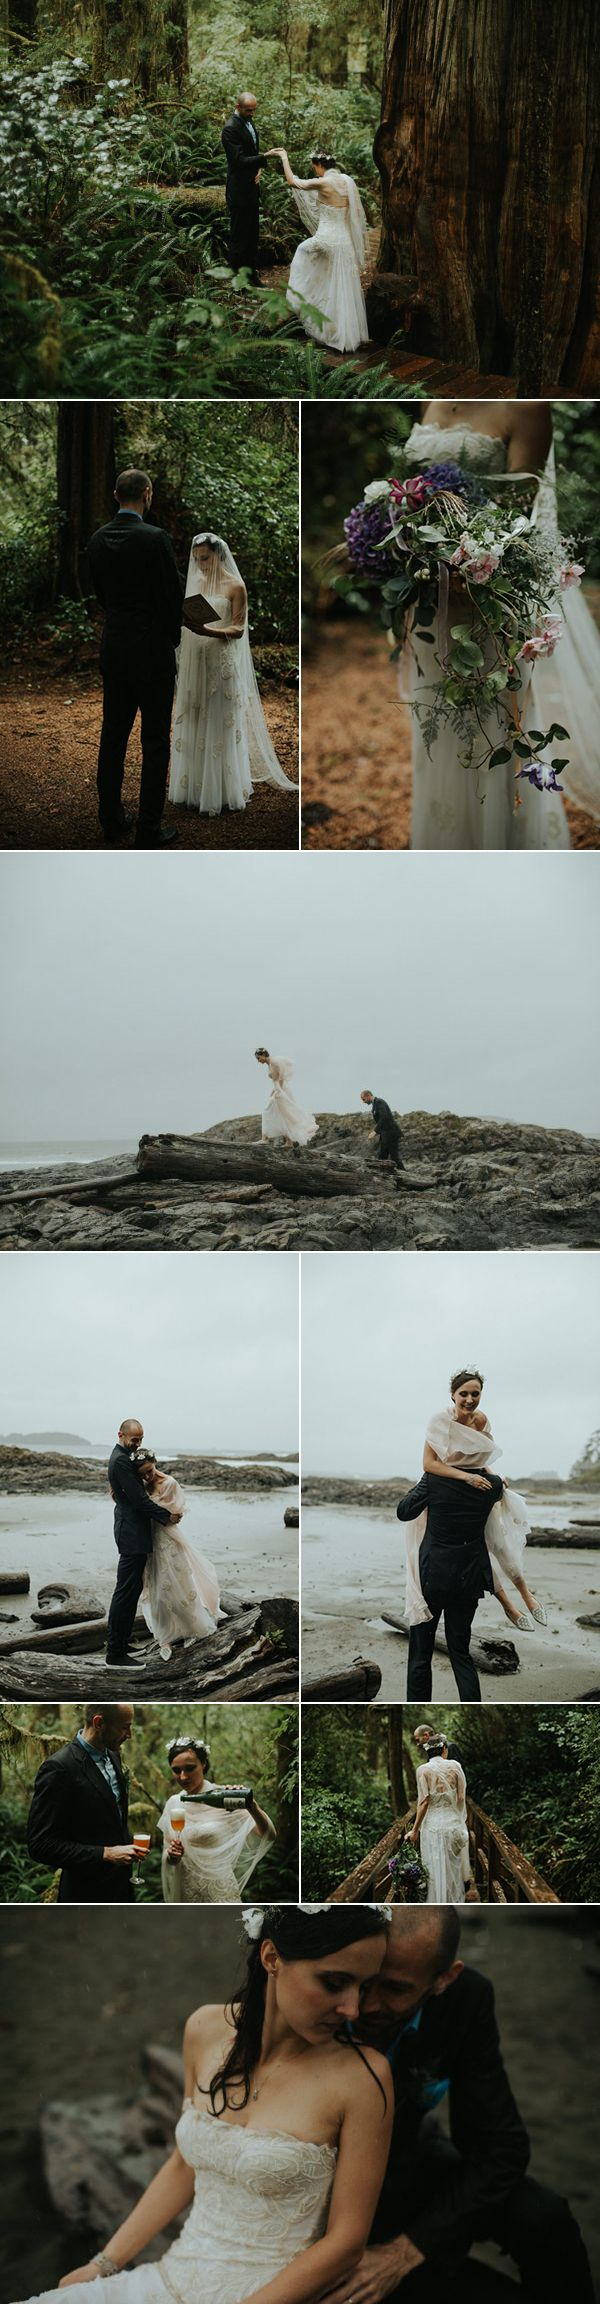 This Tofino beach wedding is one of our 21 favorite elopements |photos by Daring Wanderer